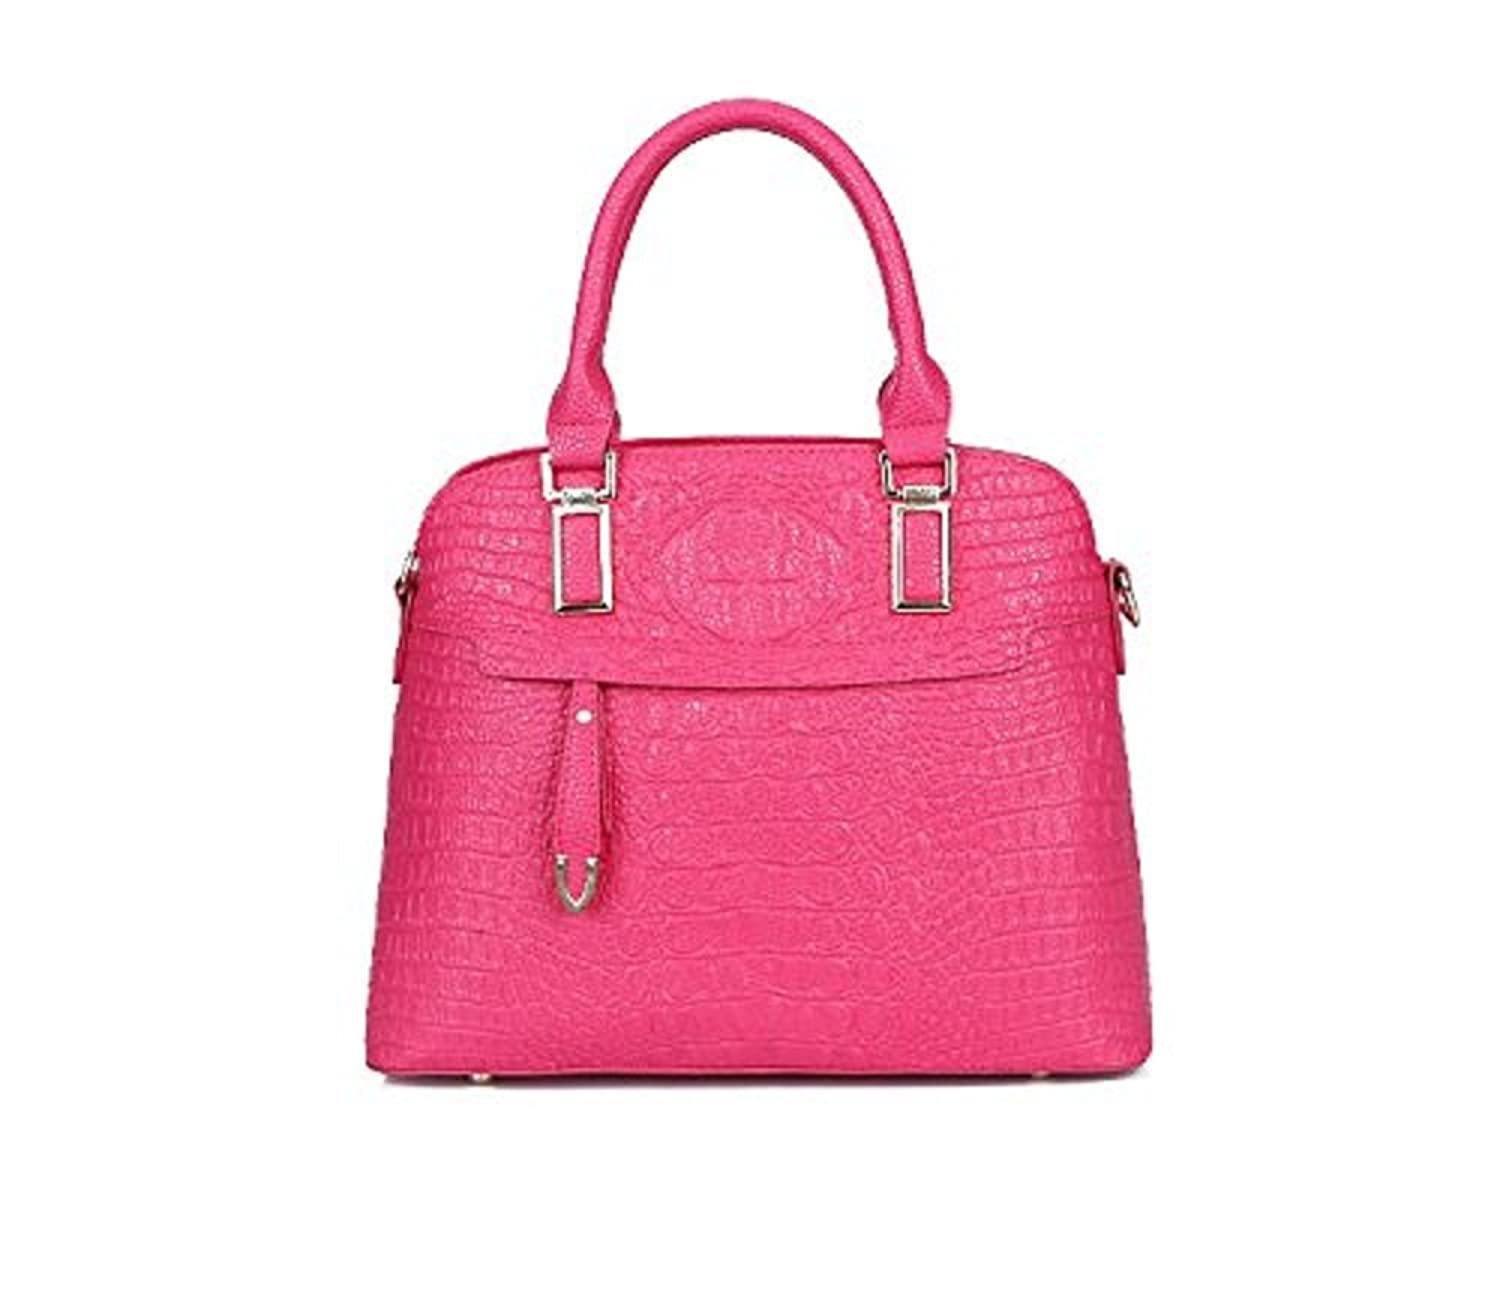 2016 latest and fashionable girl bag tote bag PU bag satchels 2 Pcs Set--fast delivery in one week